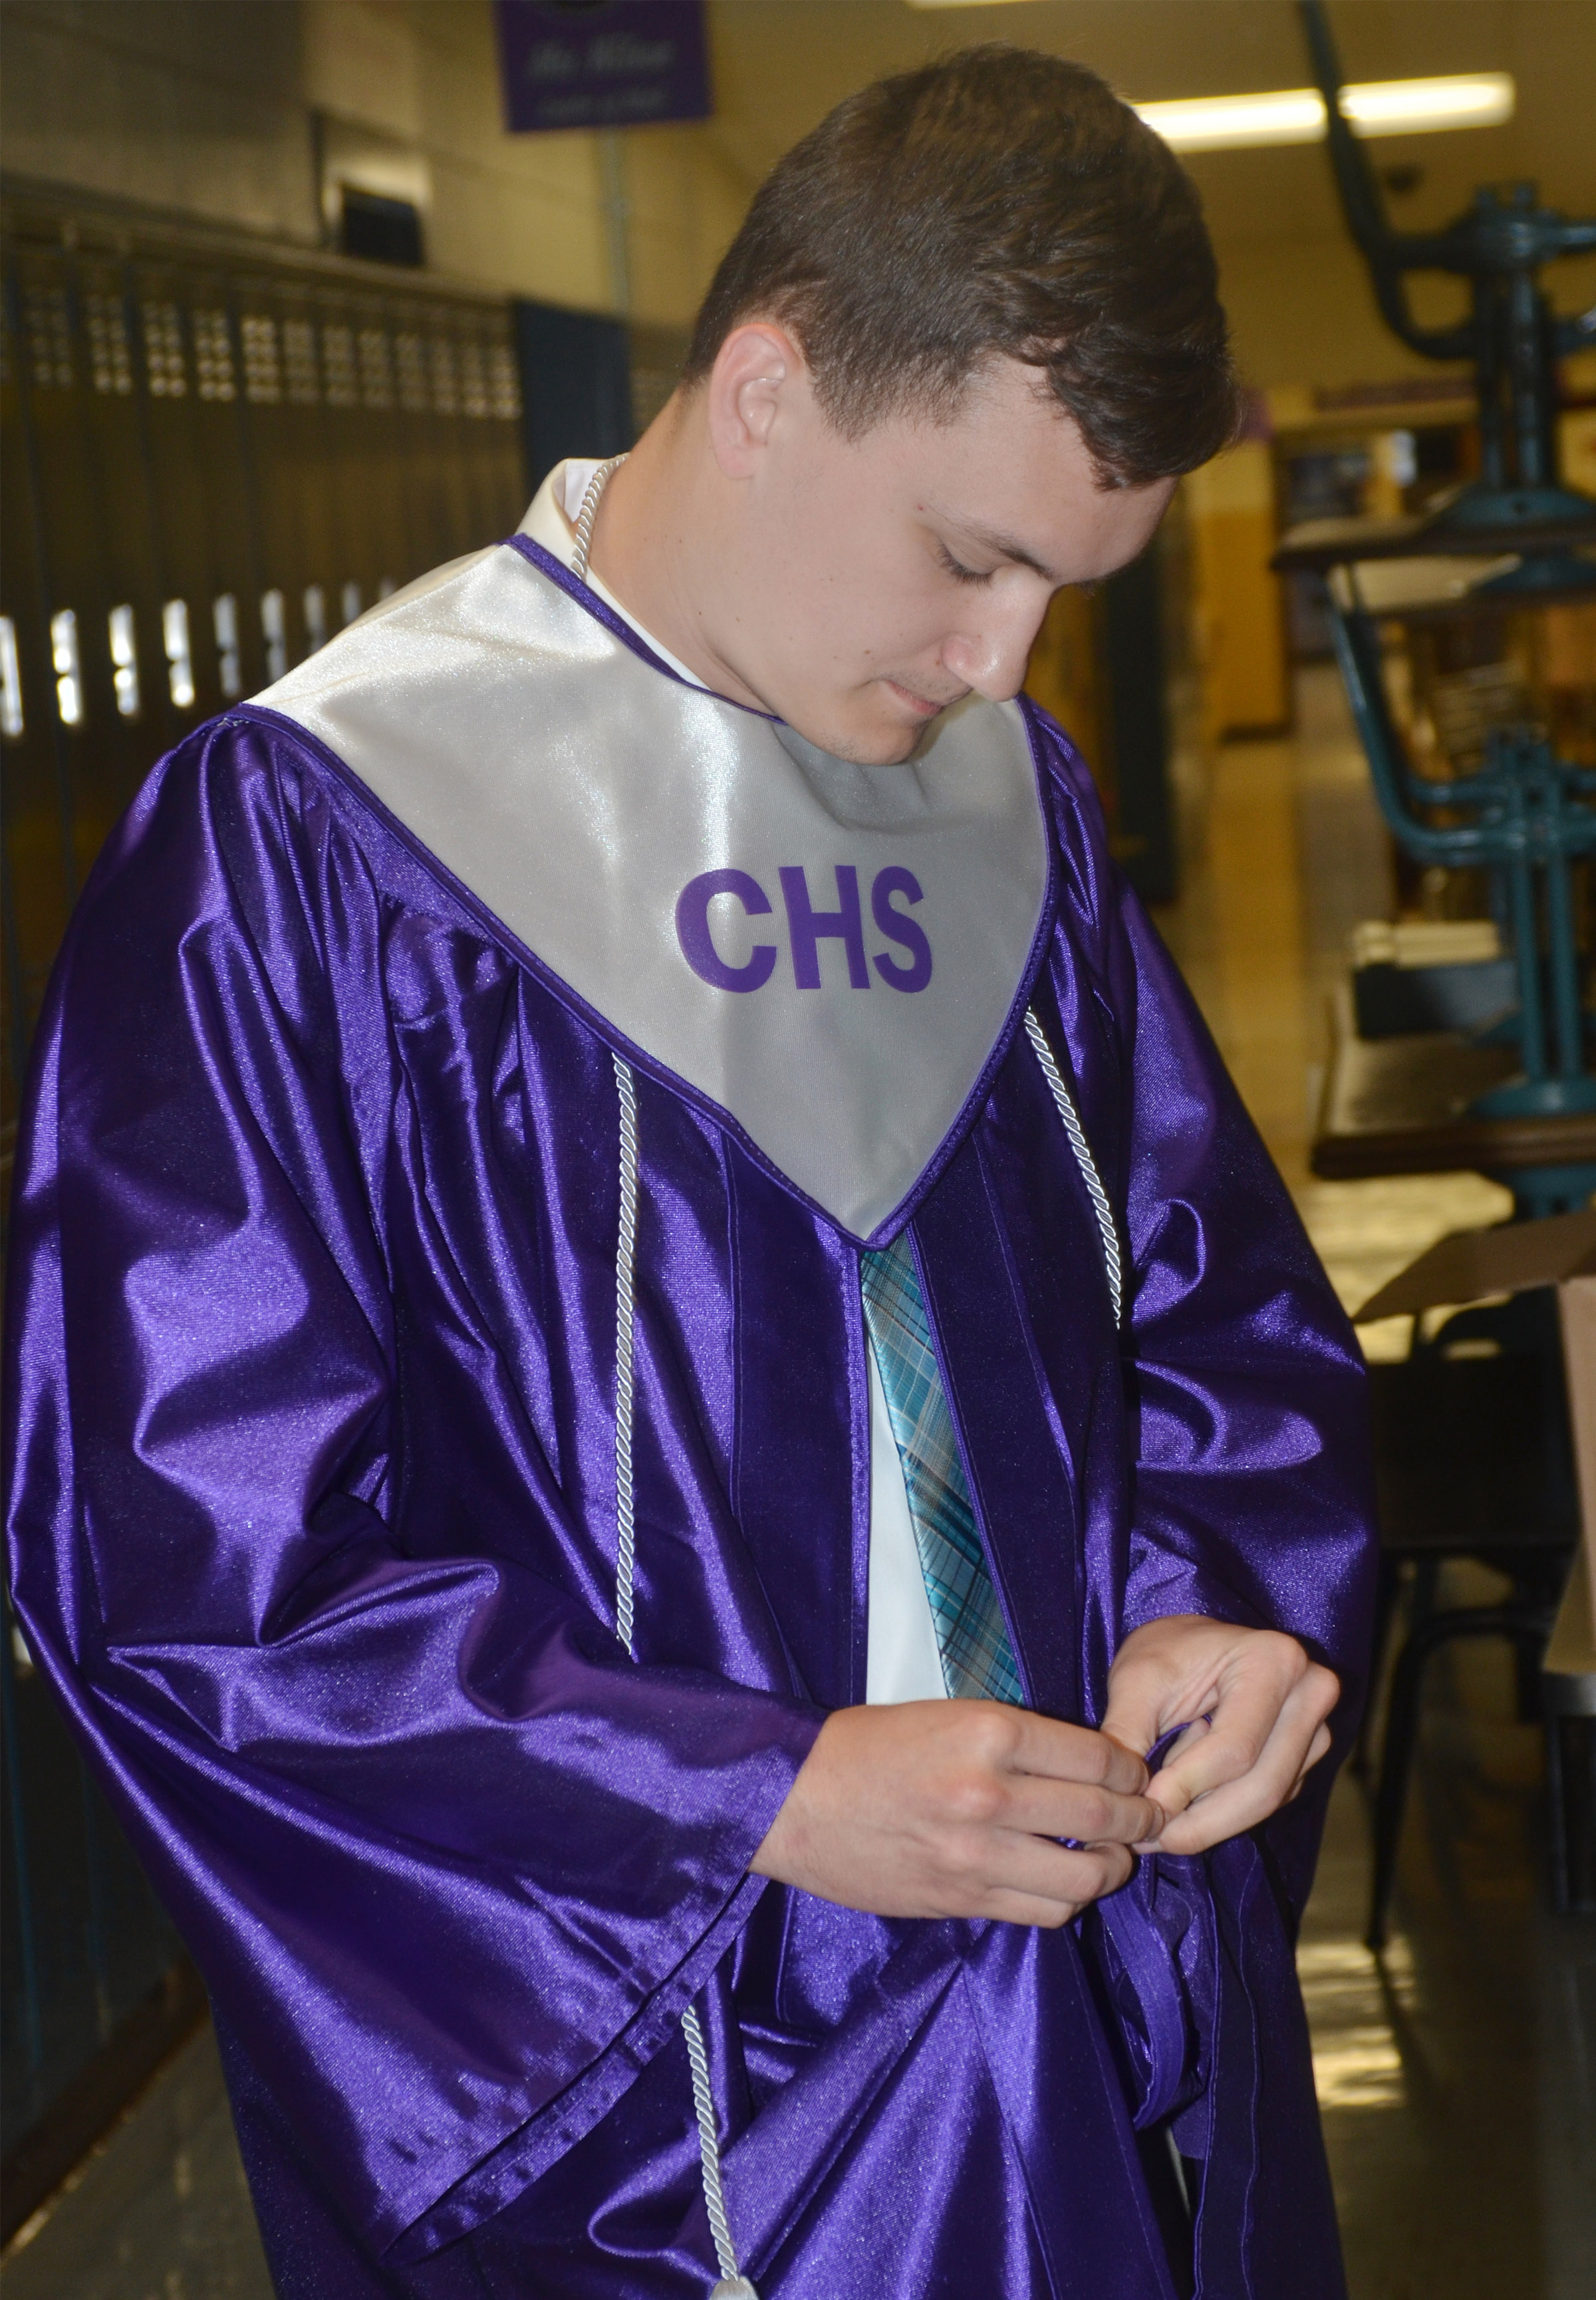 CHS senior Jonathan Rakes zips his gown before graduation.